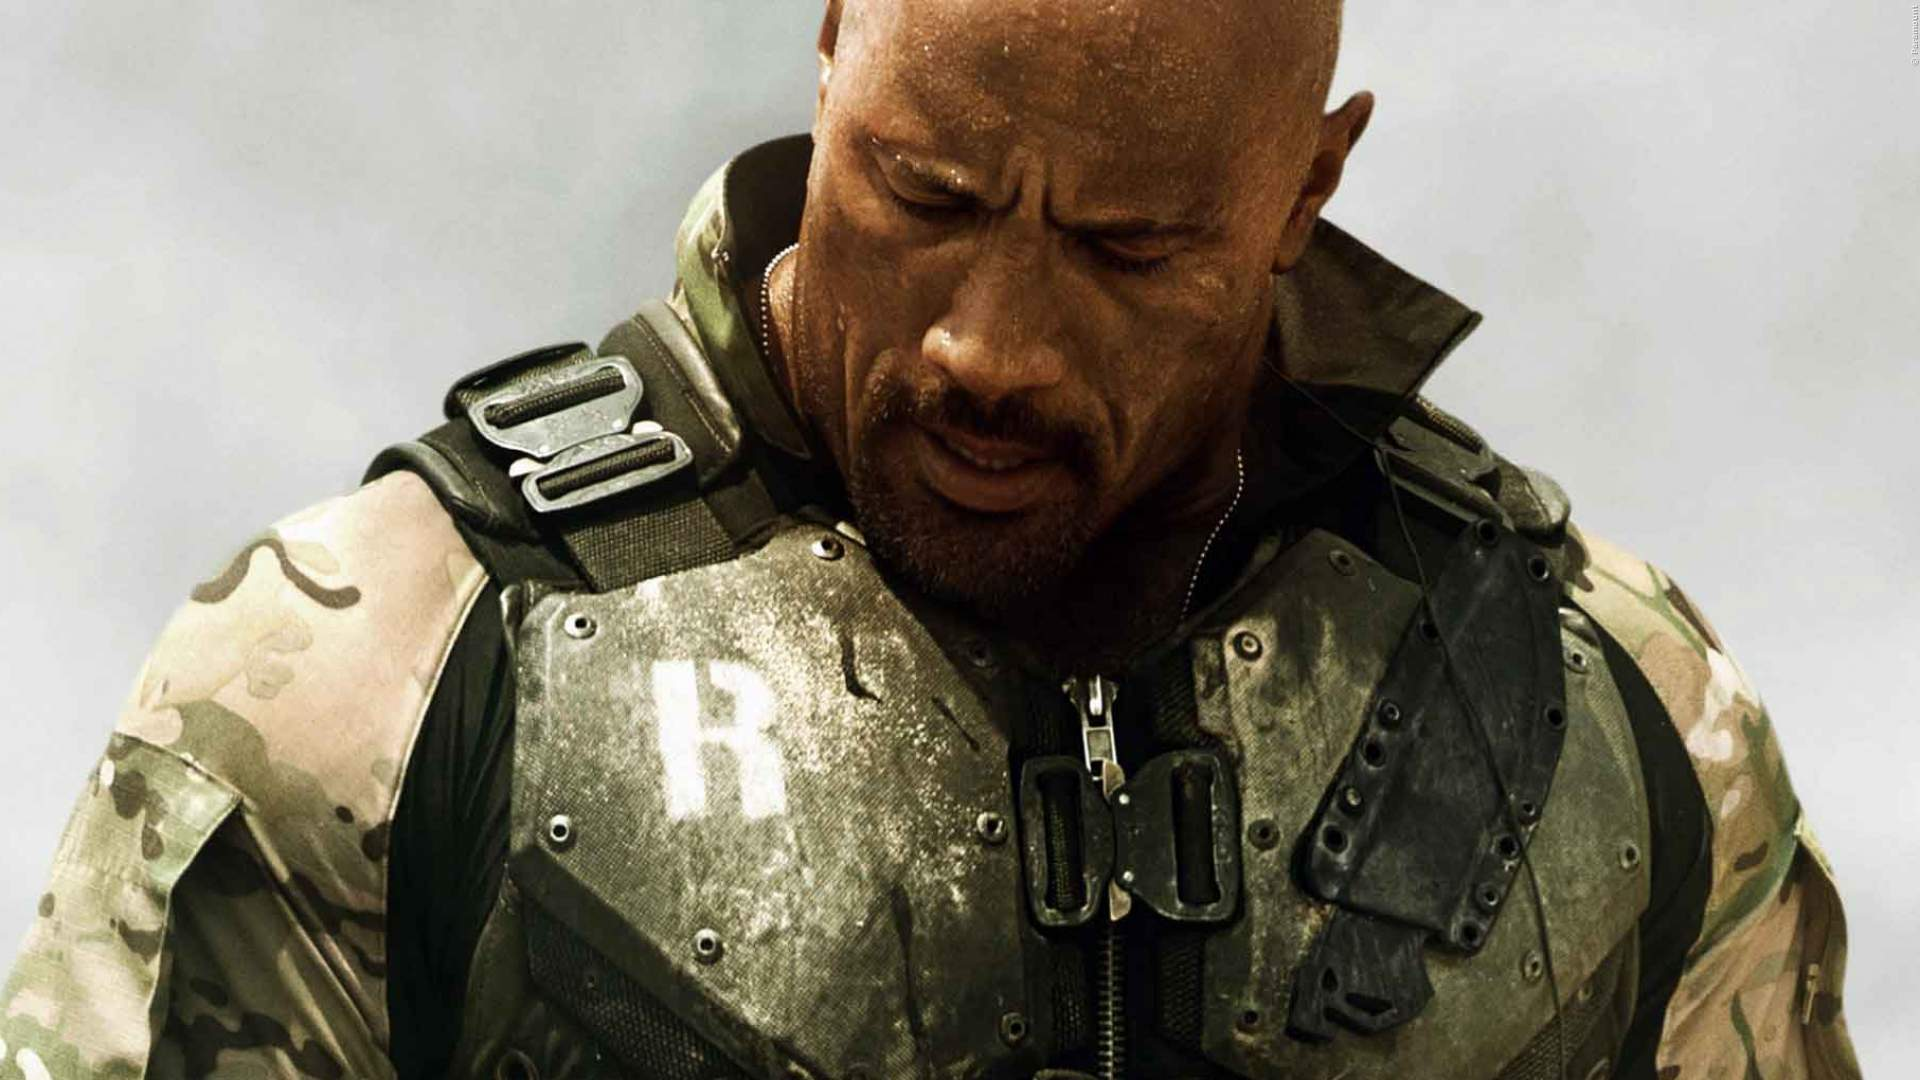 THE ROCK: Dwayne Johnson verrät Details zu 'Black Adam'